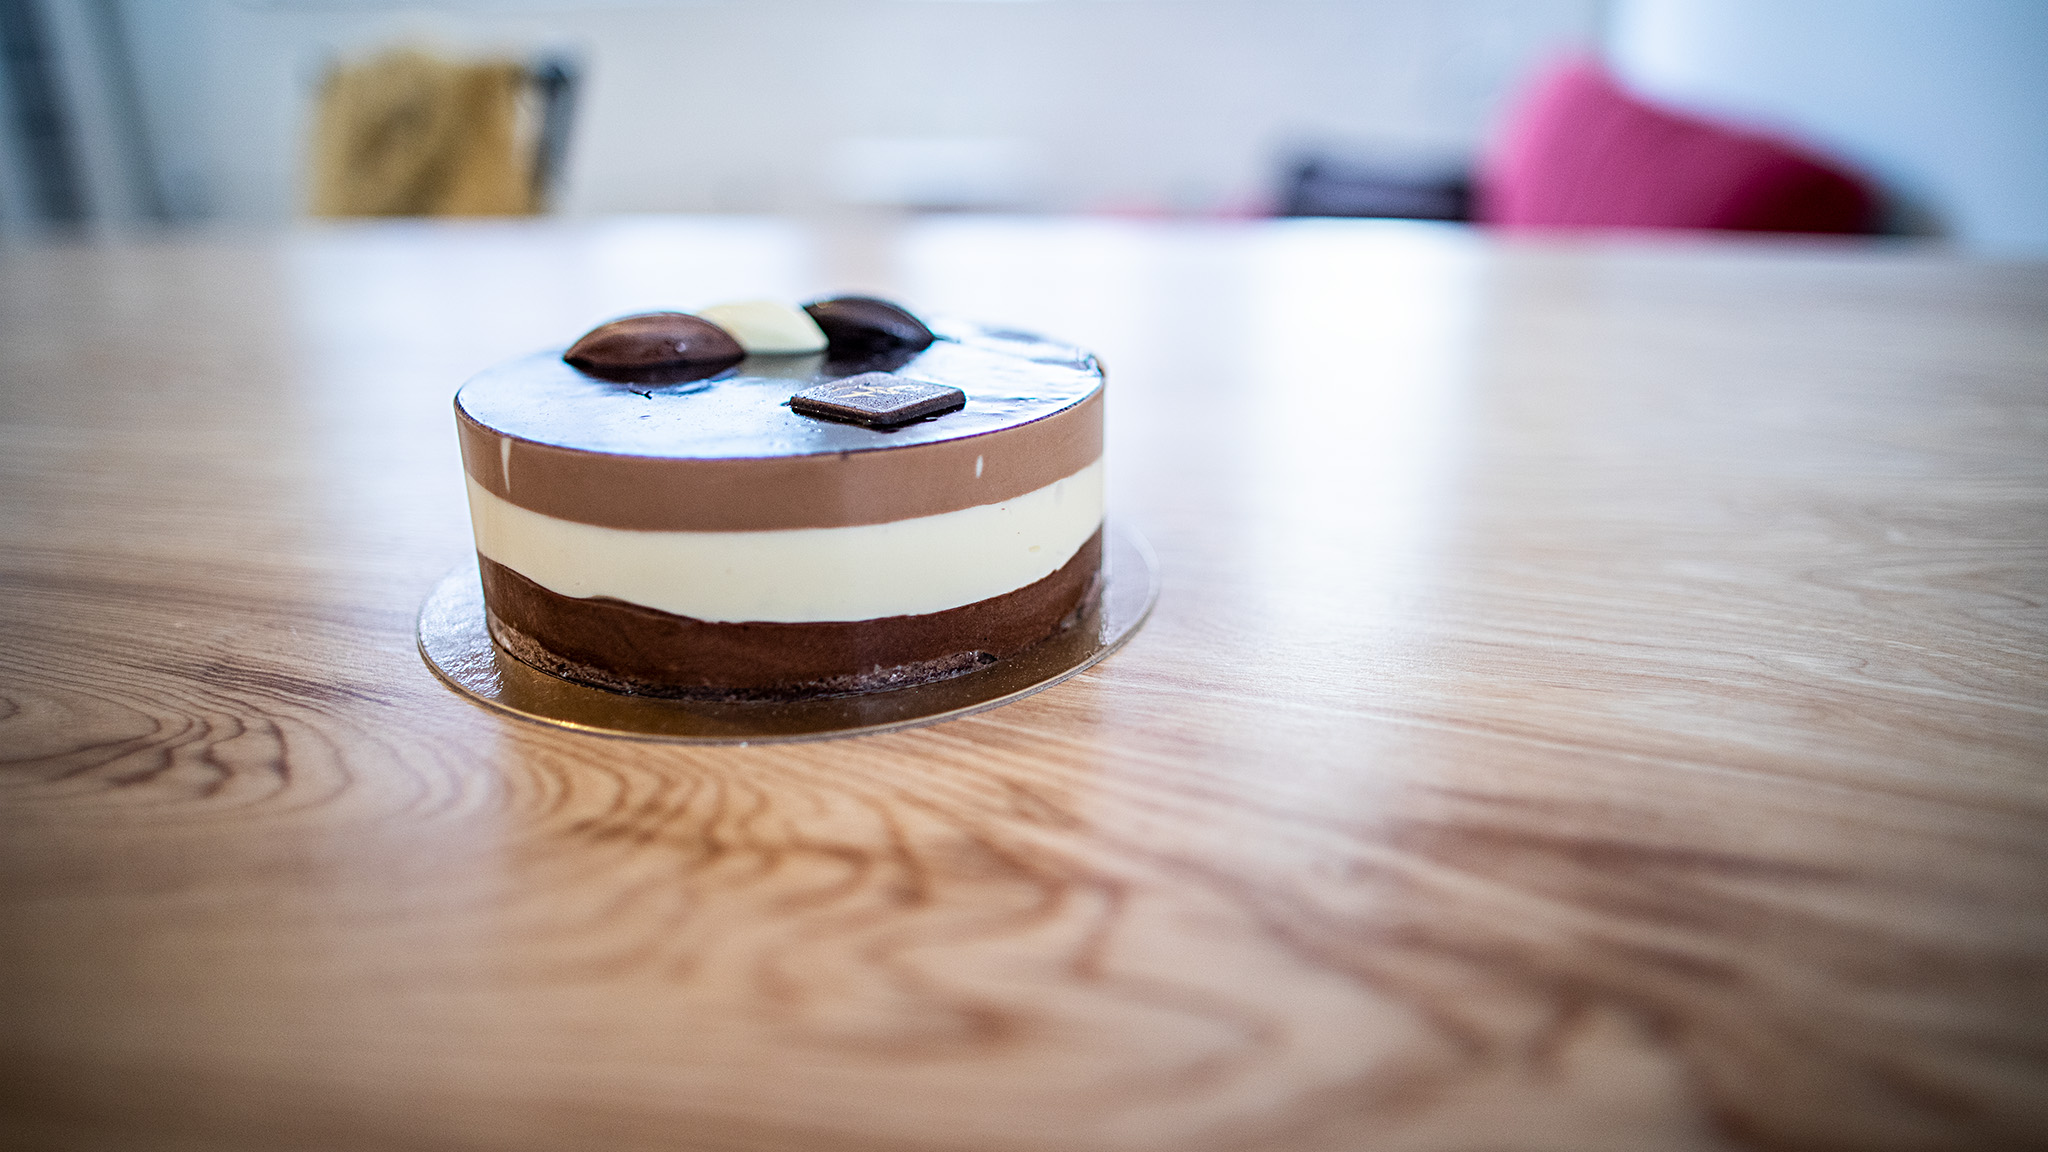 The day I had the idea about the cake collar, I went to buy this cake. It went pretty well (and I ate it all!)